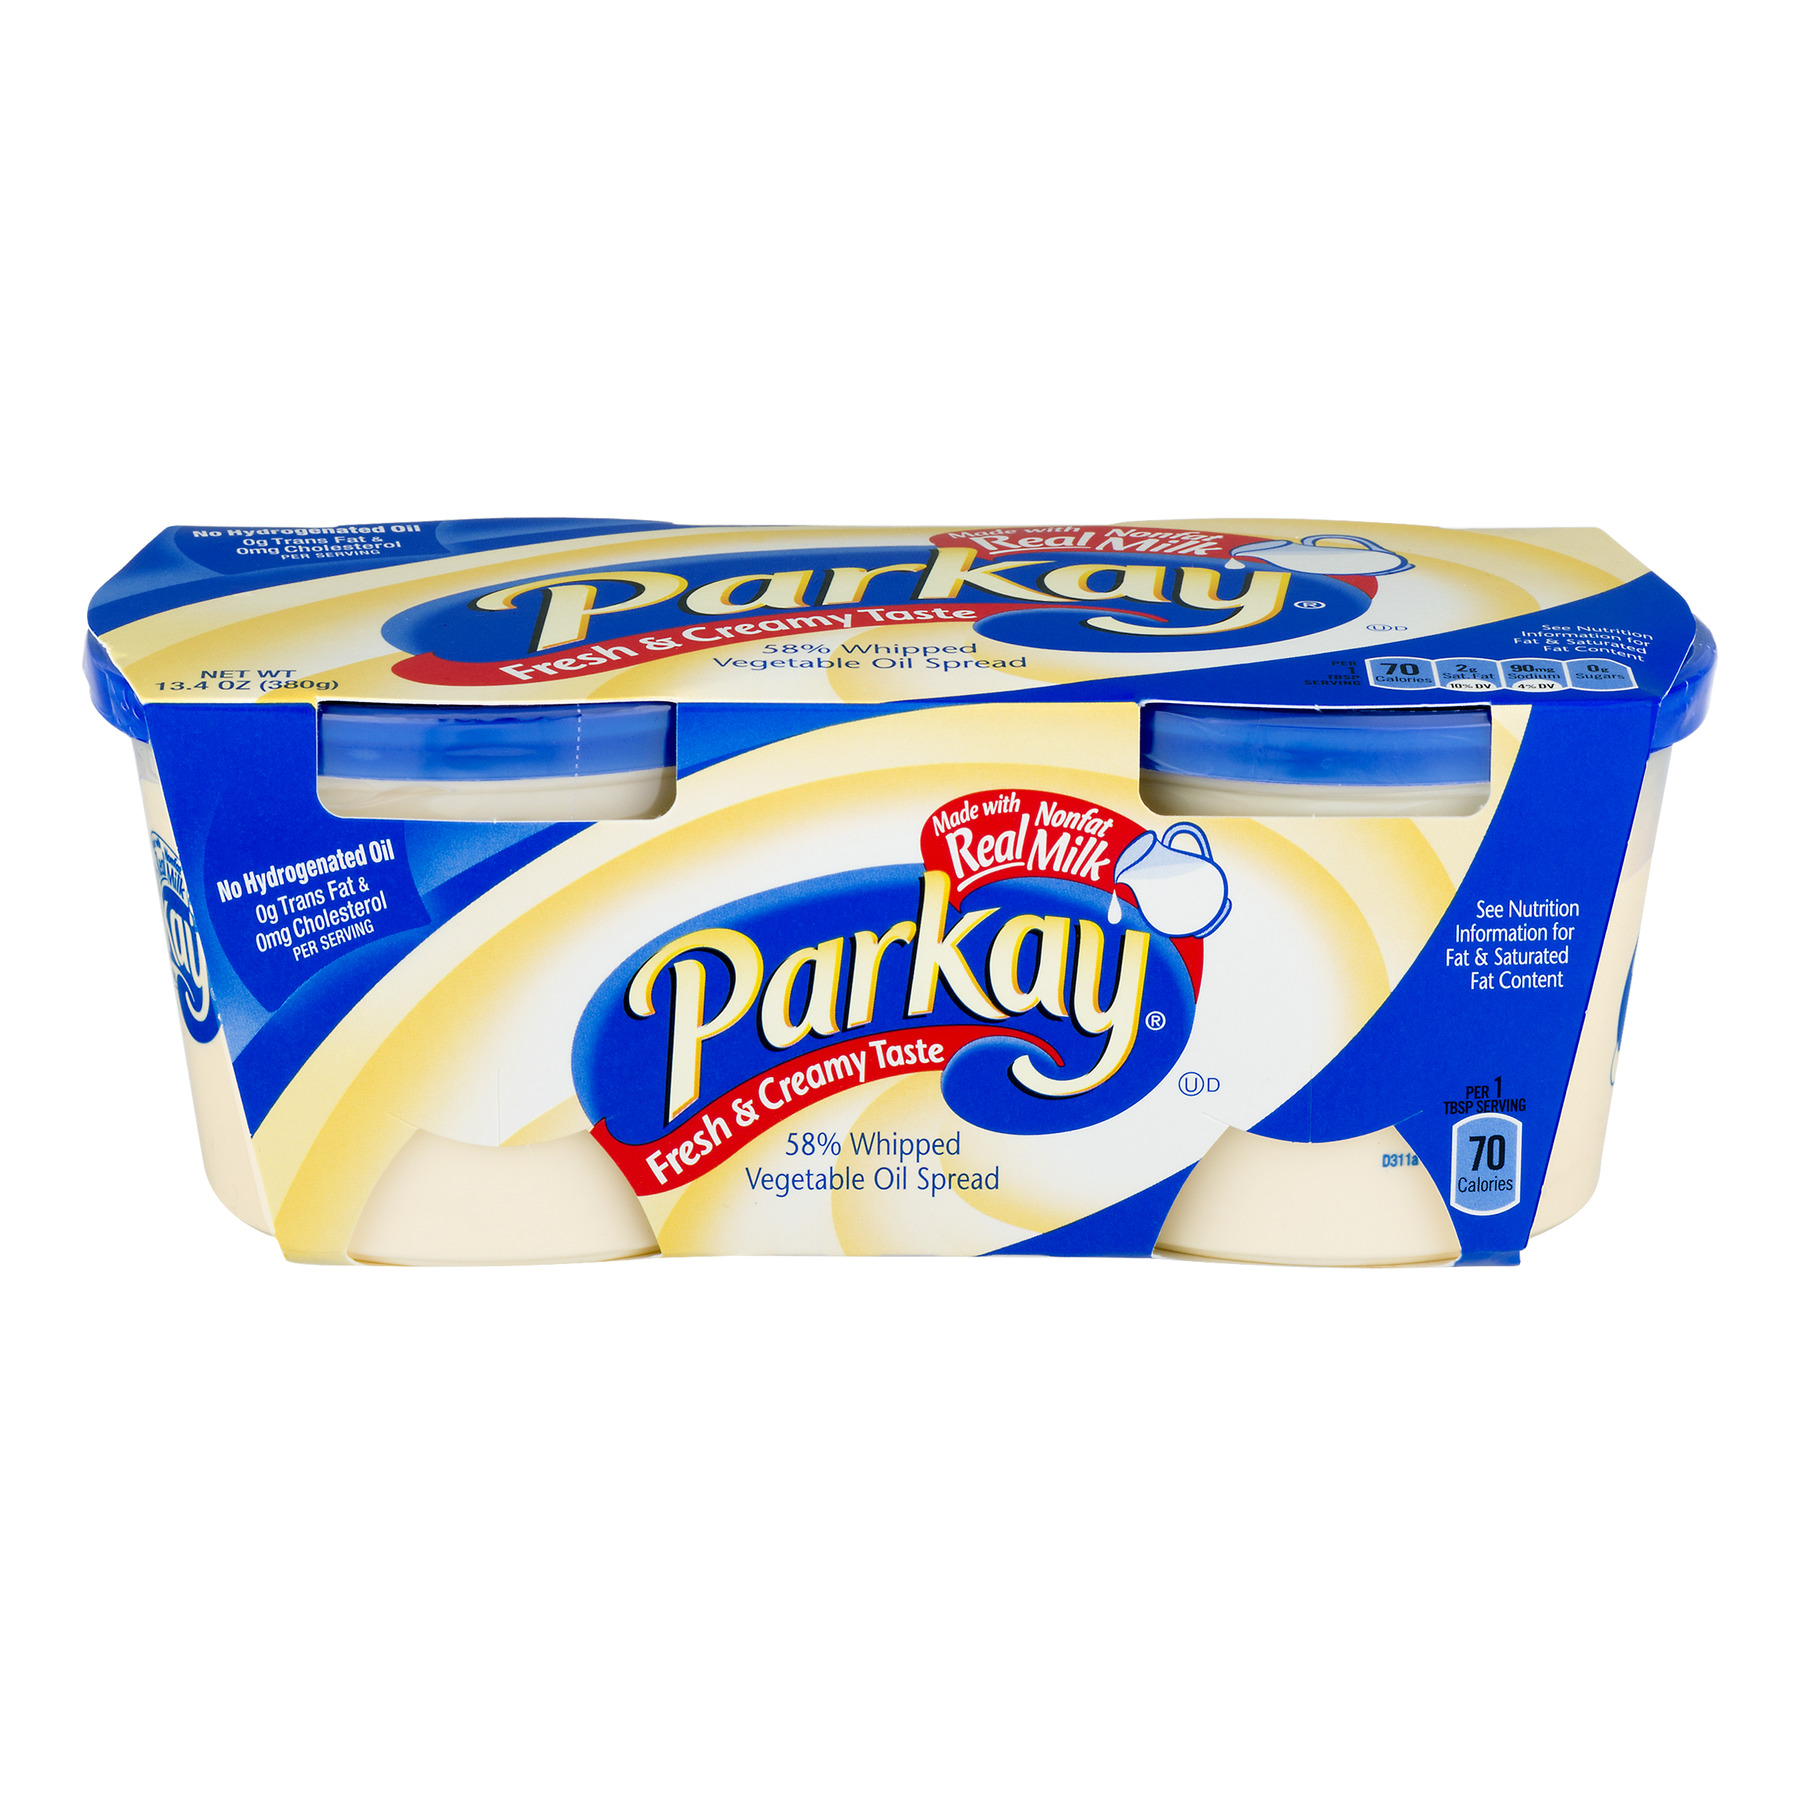 Parkay 58% Vegetable Oil Spread, Whipped, 13.4 Oz.